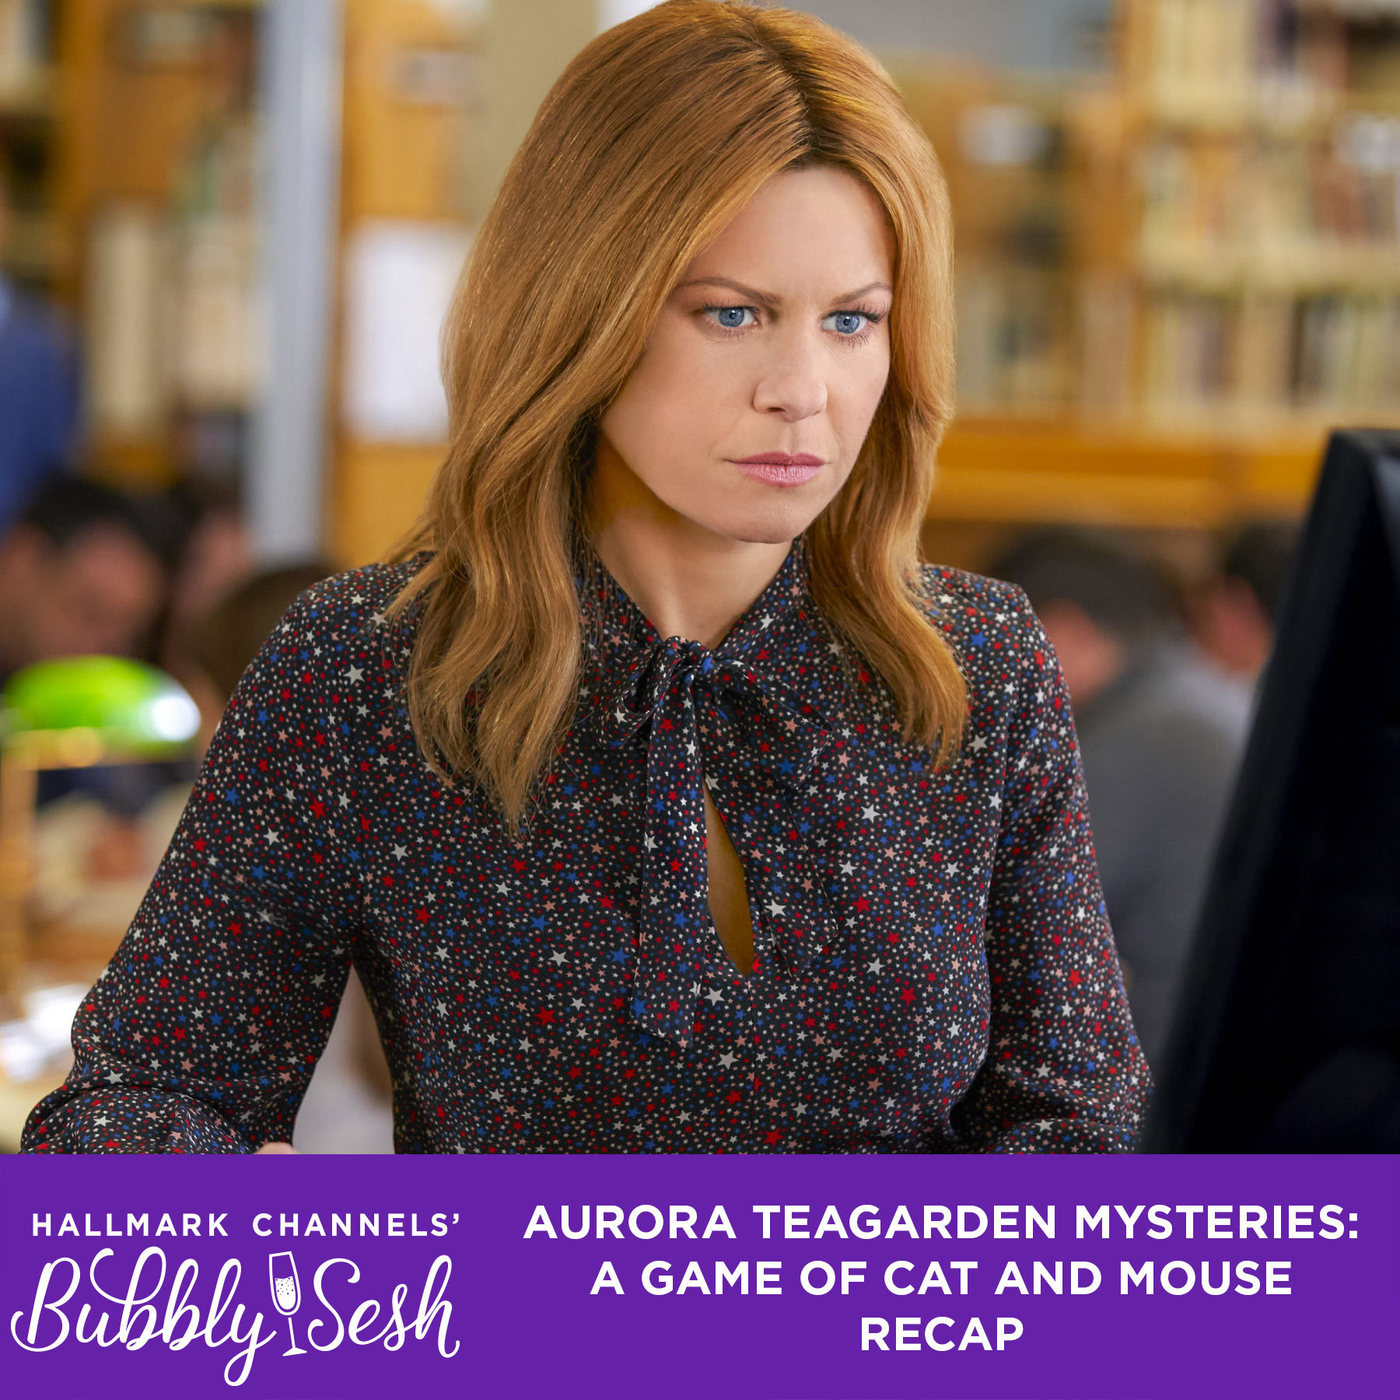 Aurora Teagarden Mysteries: A Game of Cat and Mouse Recap